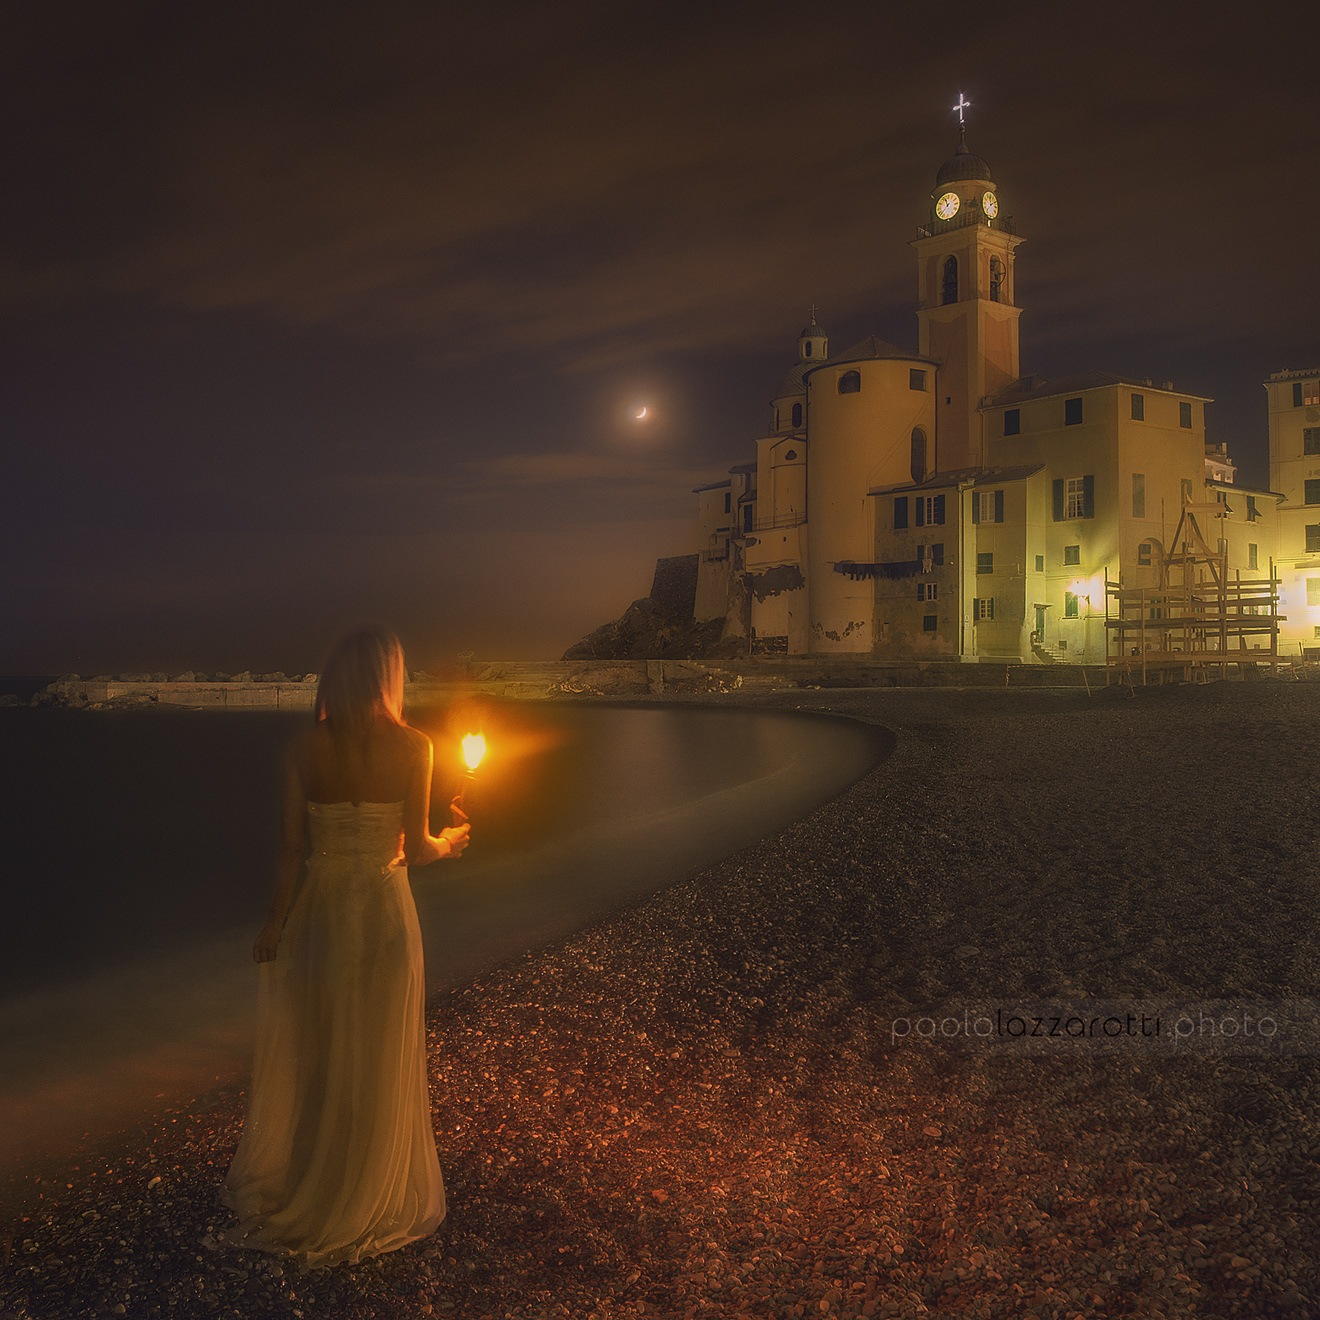 Camogli Daydreaming by Paolo Lazzarotti